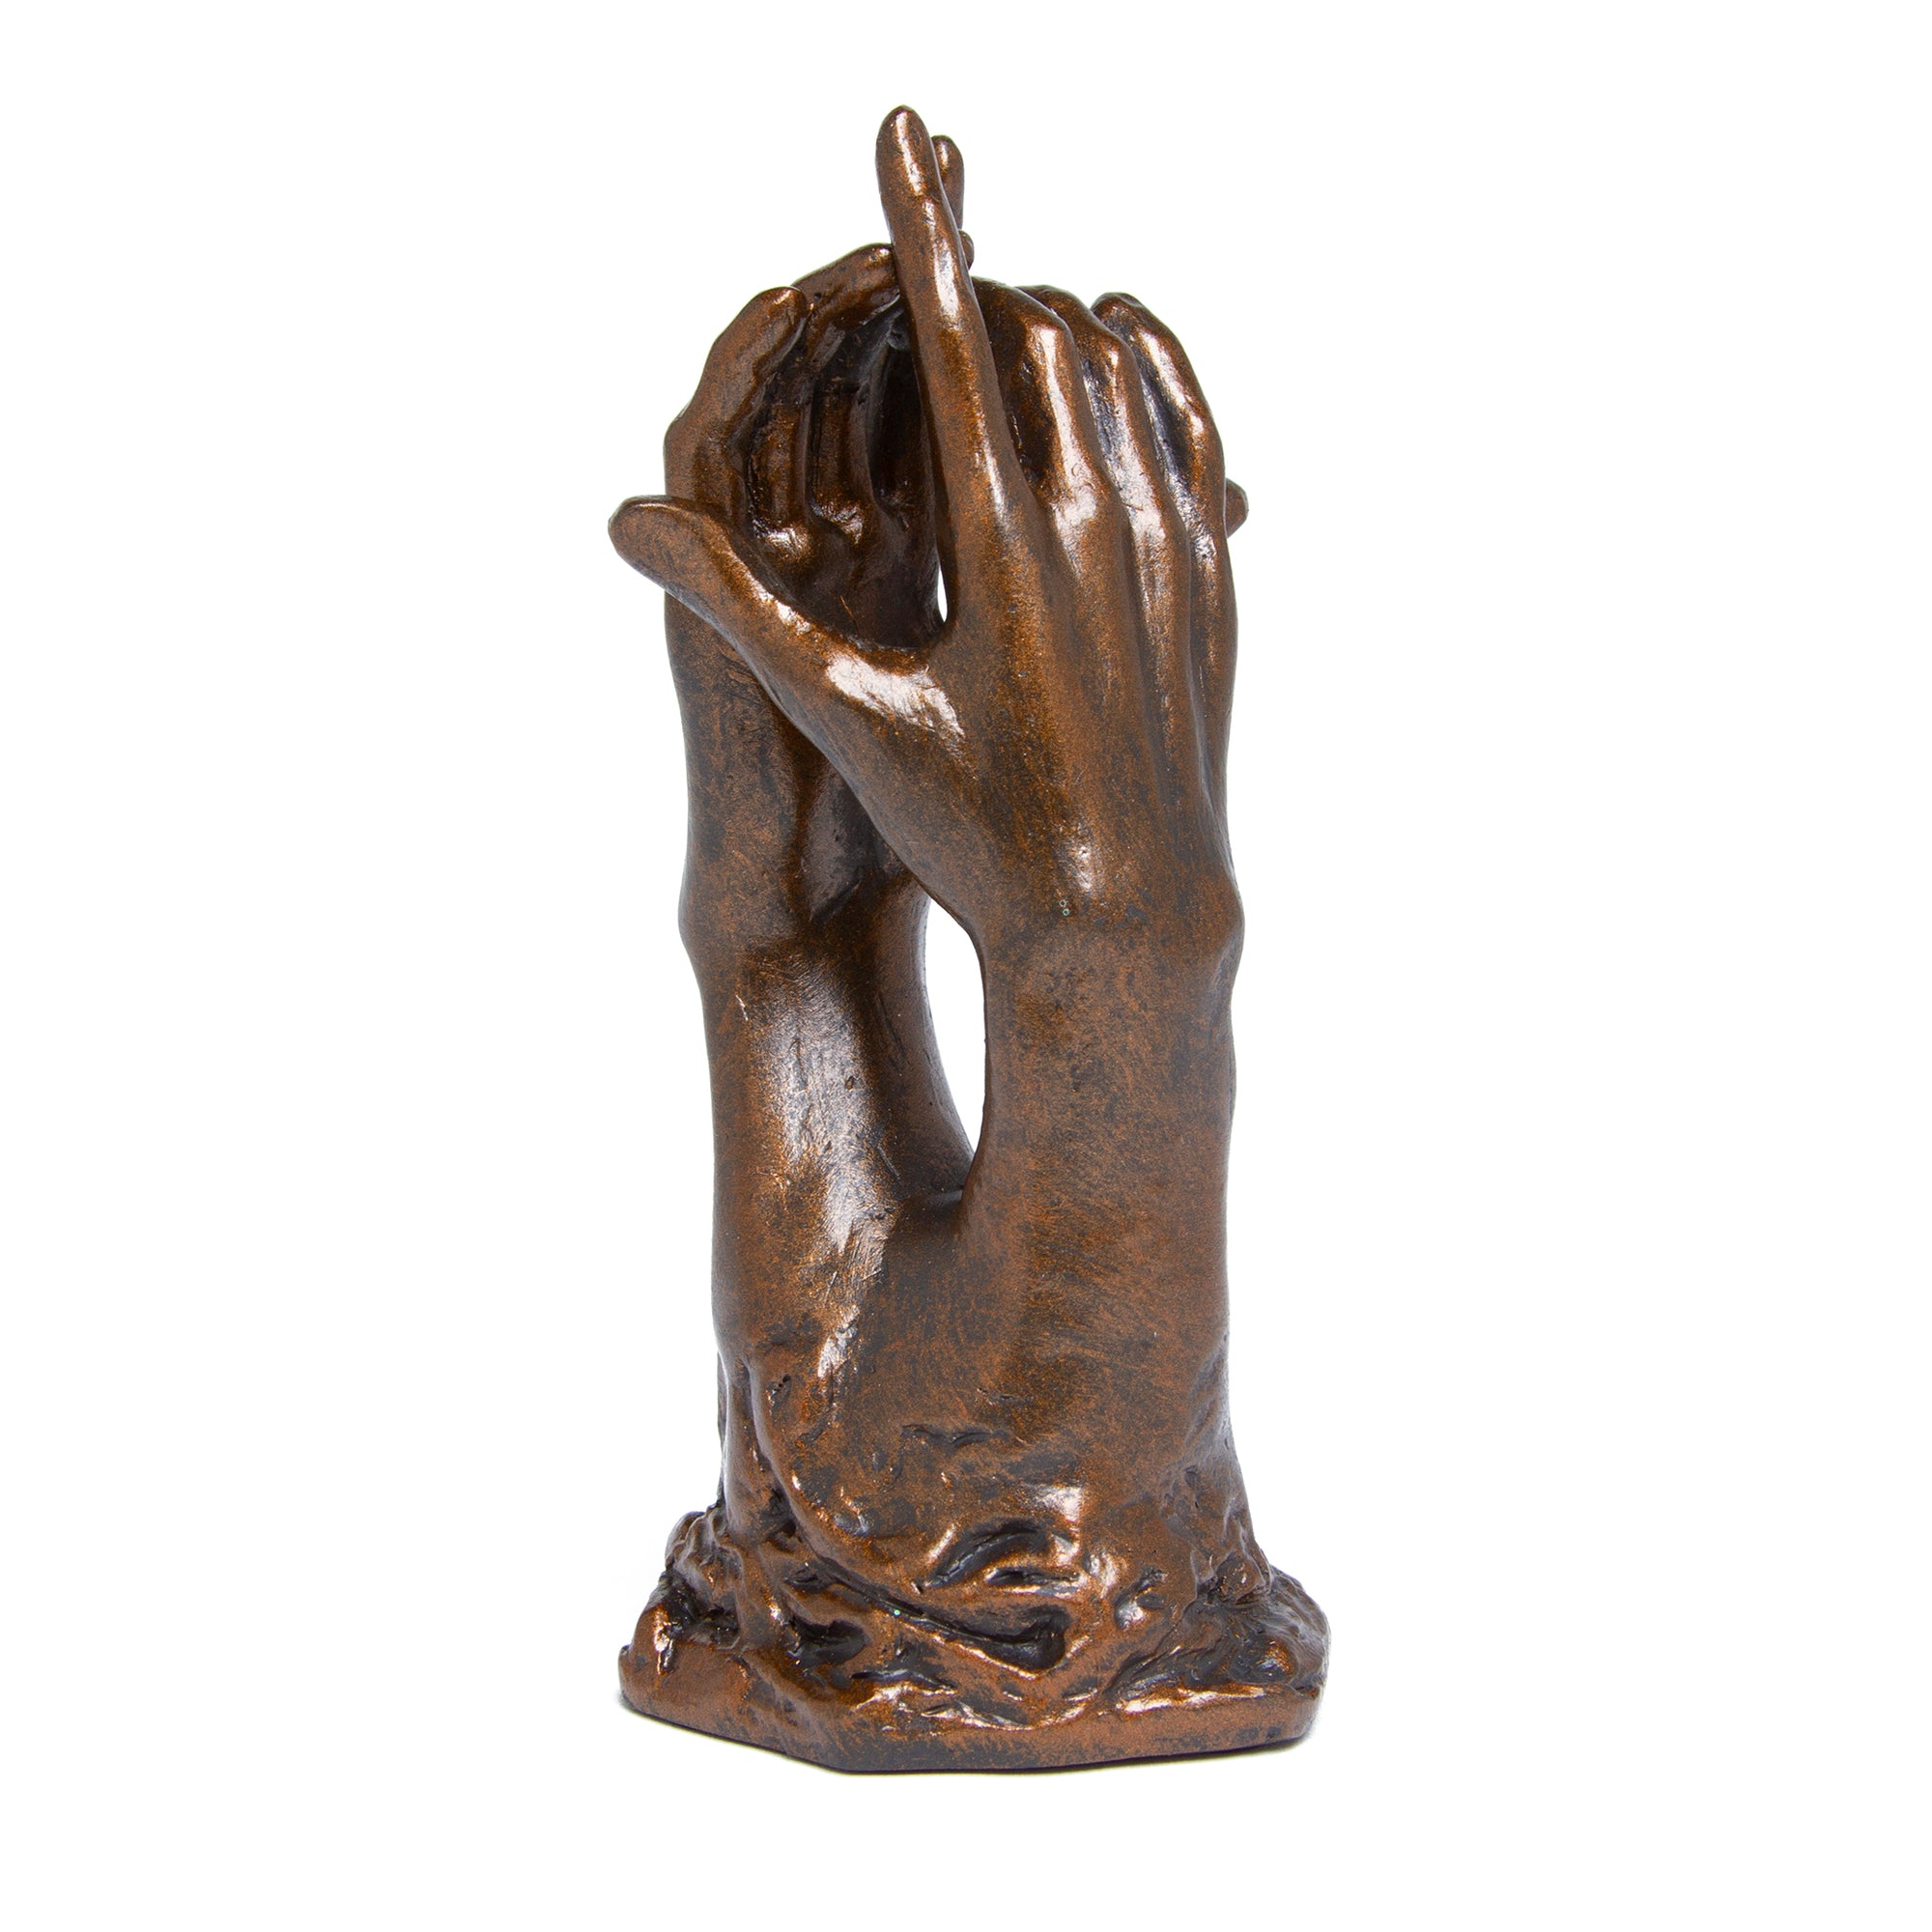 Miniature Hands by Auguste Rodin | Getty Store